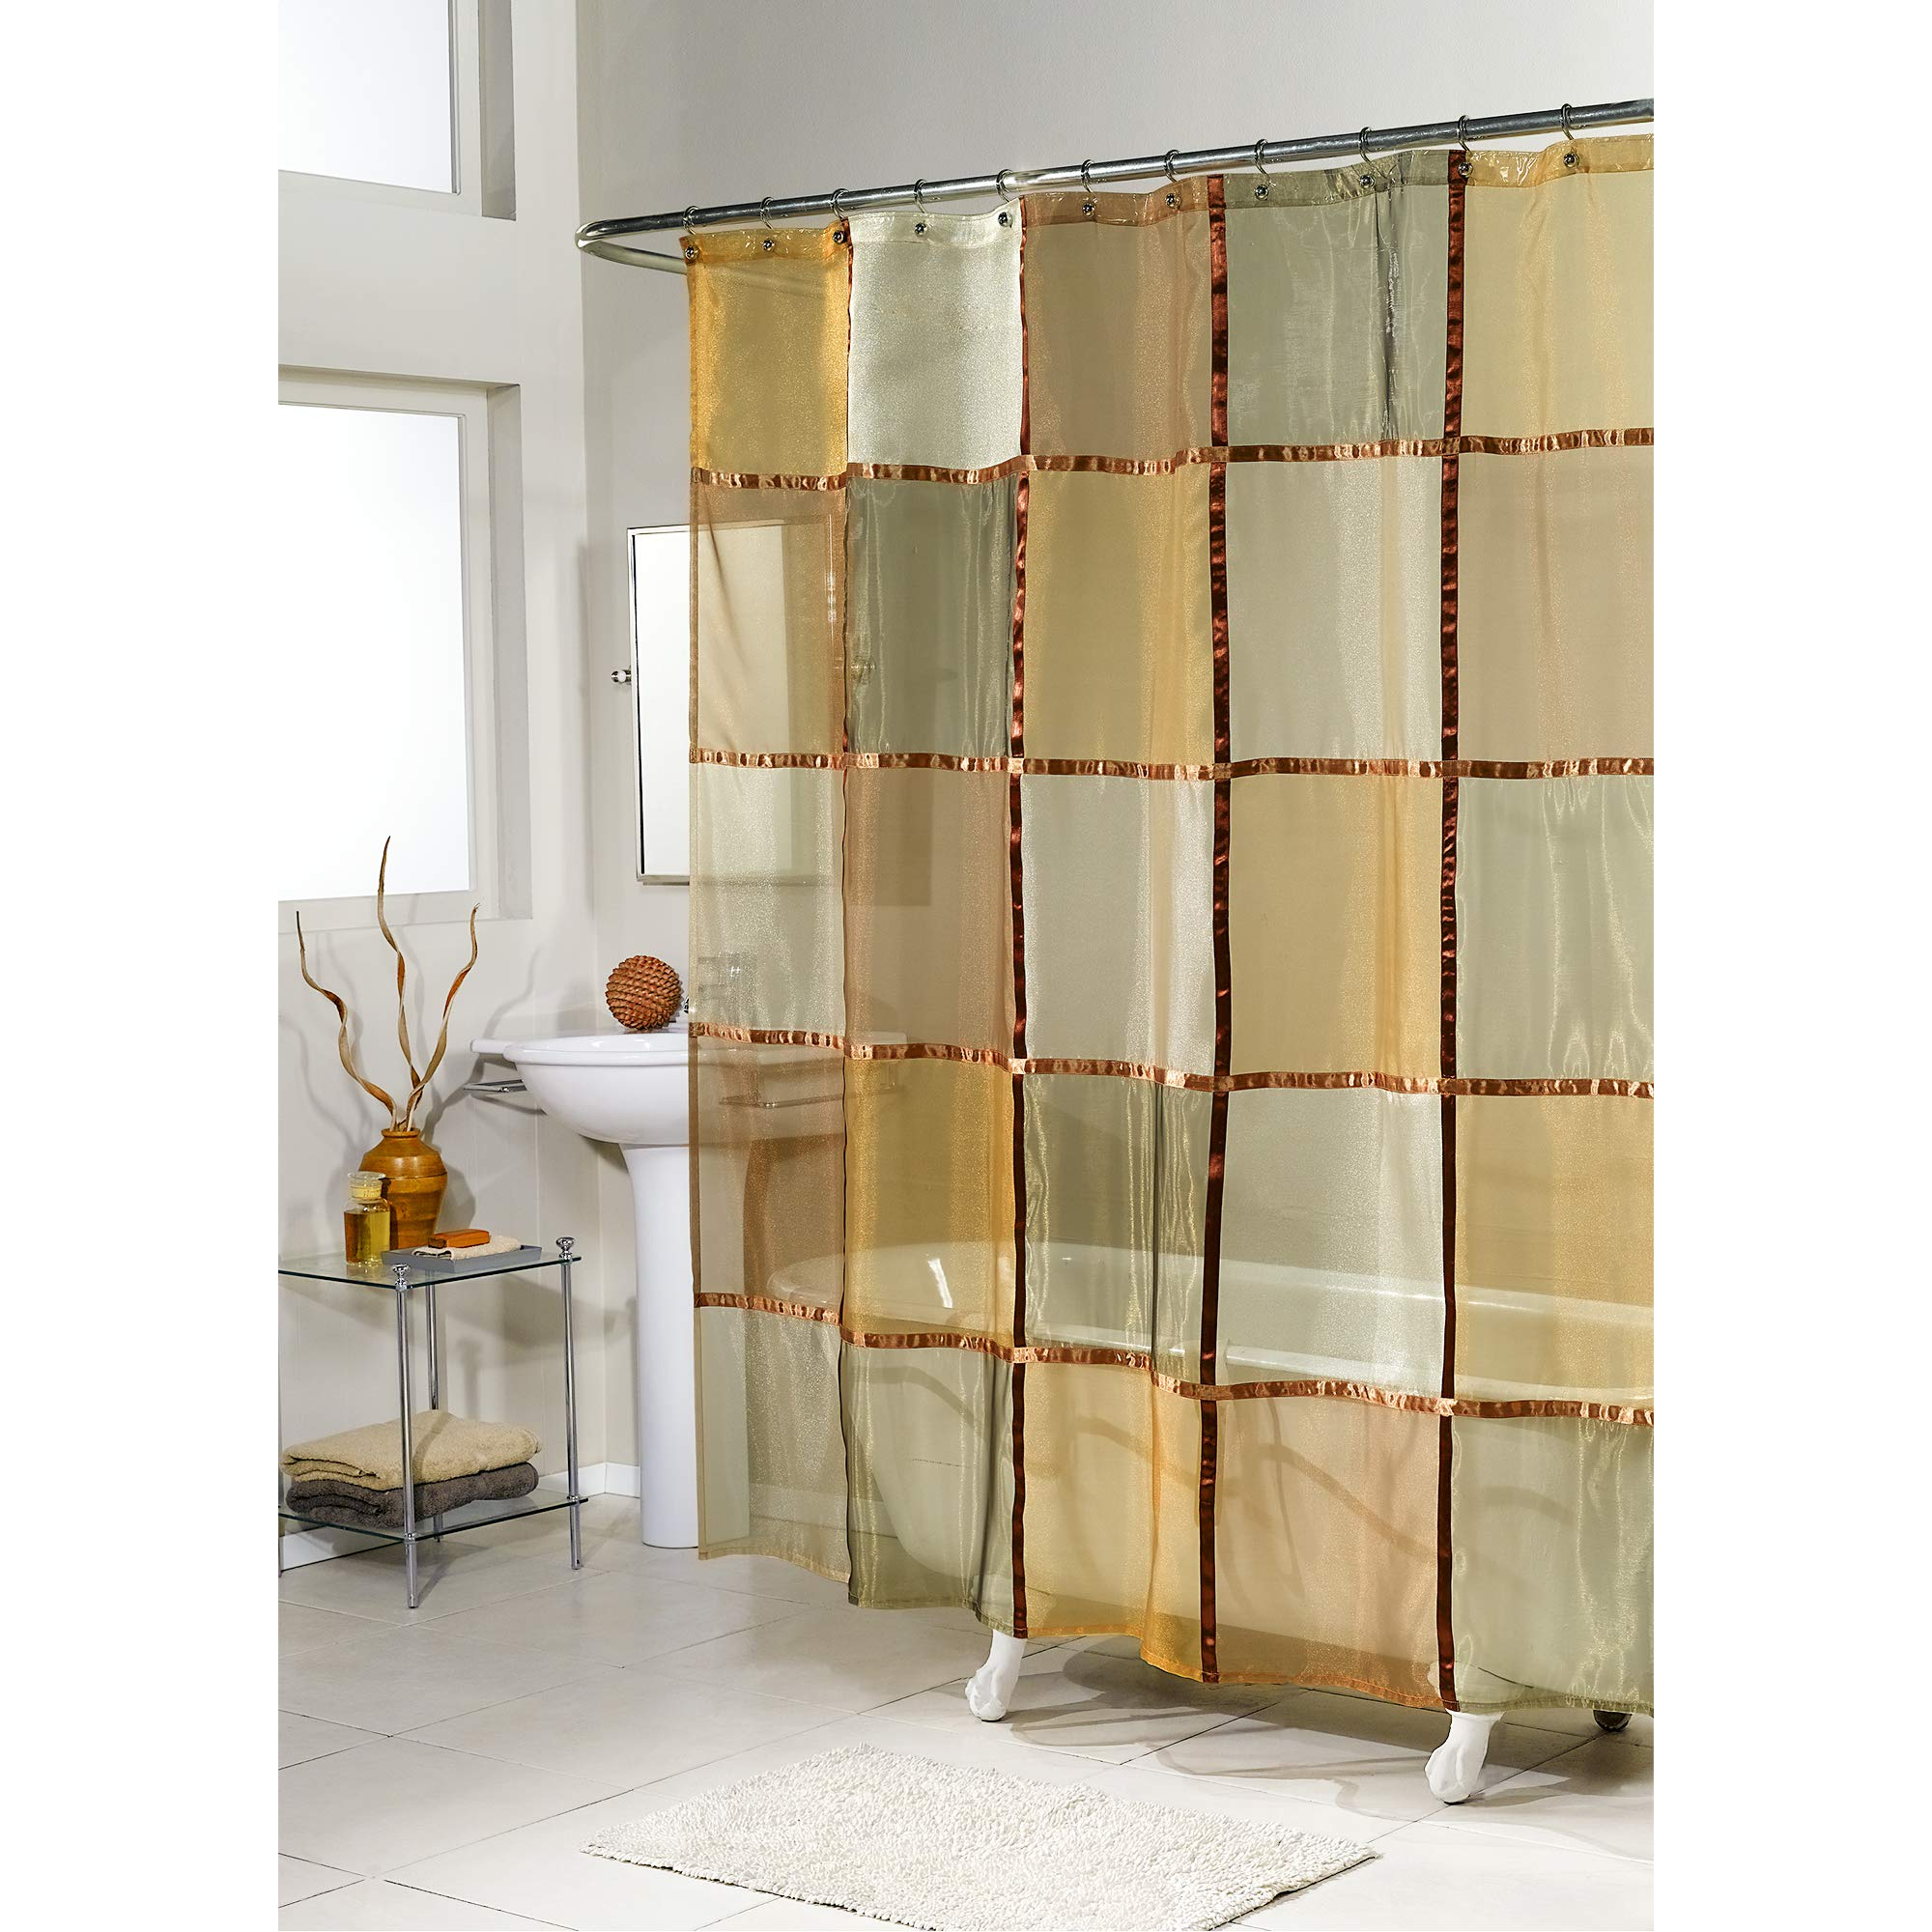 excell home fashions mosaic fabric shower curtain superior quality water repellent quick dry shower curtain for master bathroom kid s guest